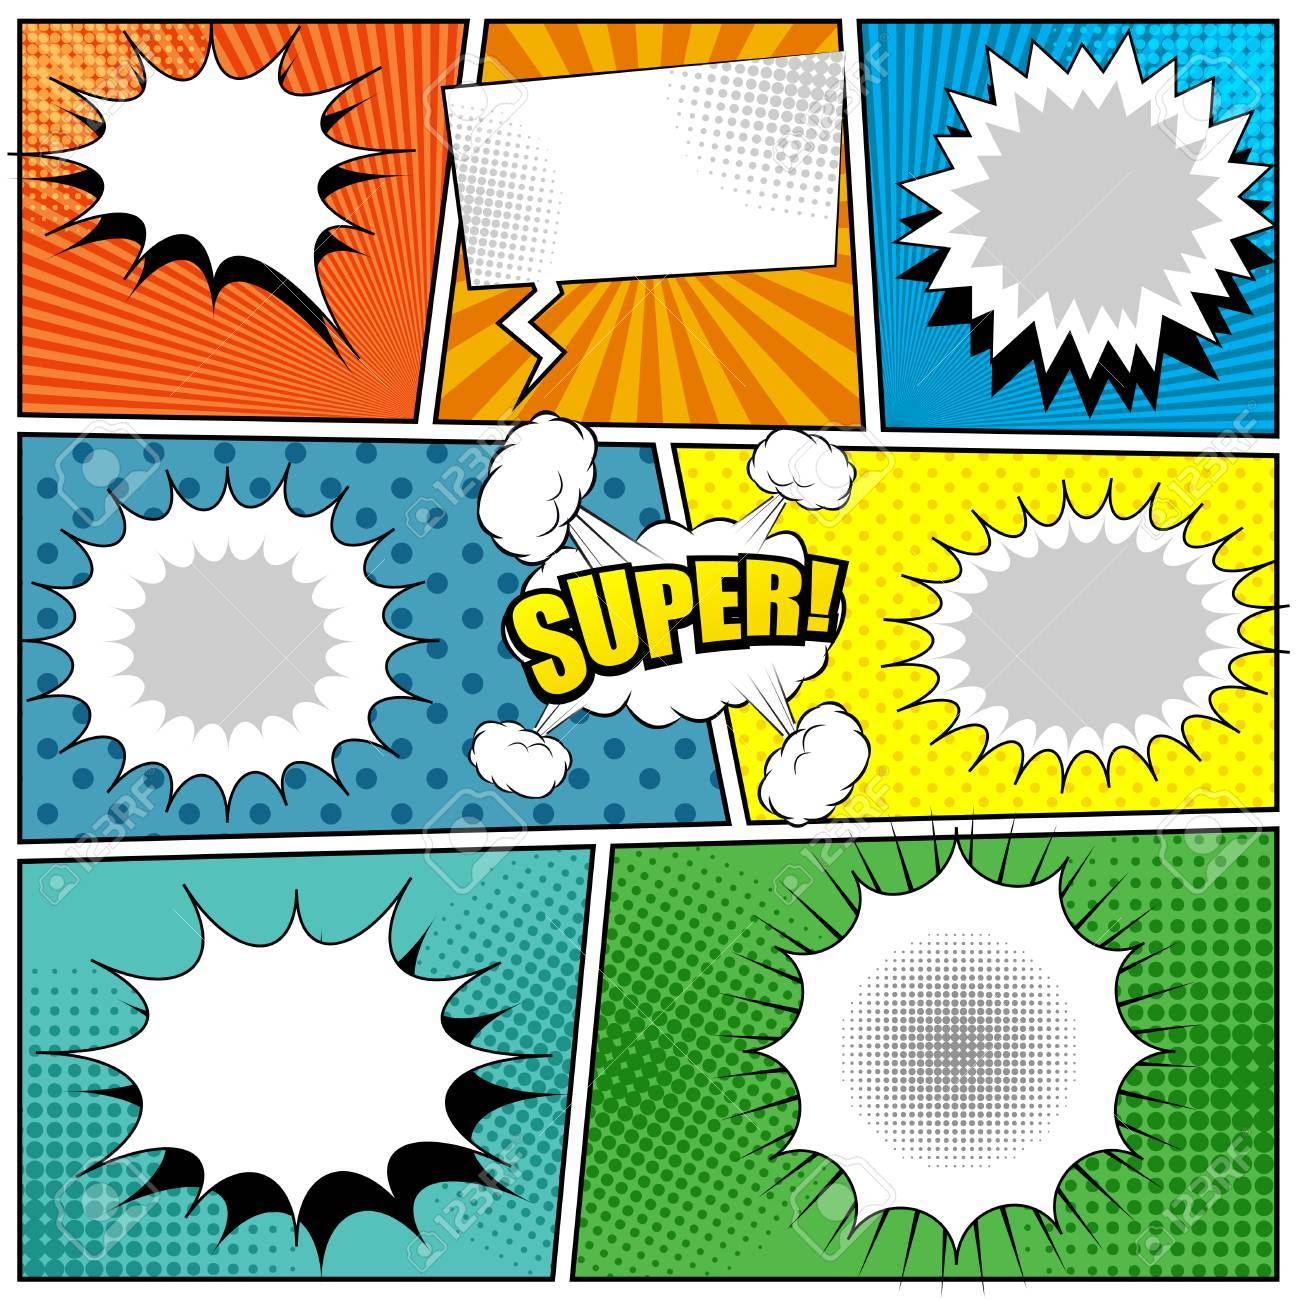 Comic Book Colorful Background With Speech Bubbles Radial Sound Halftone And Dotted Effects